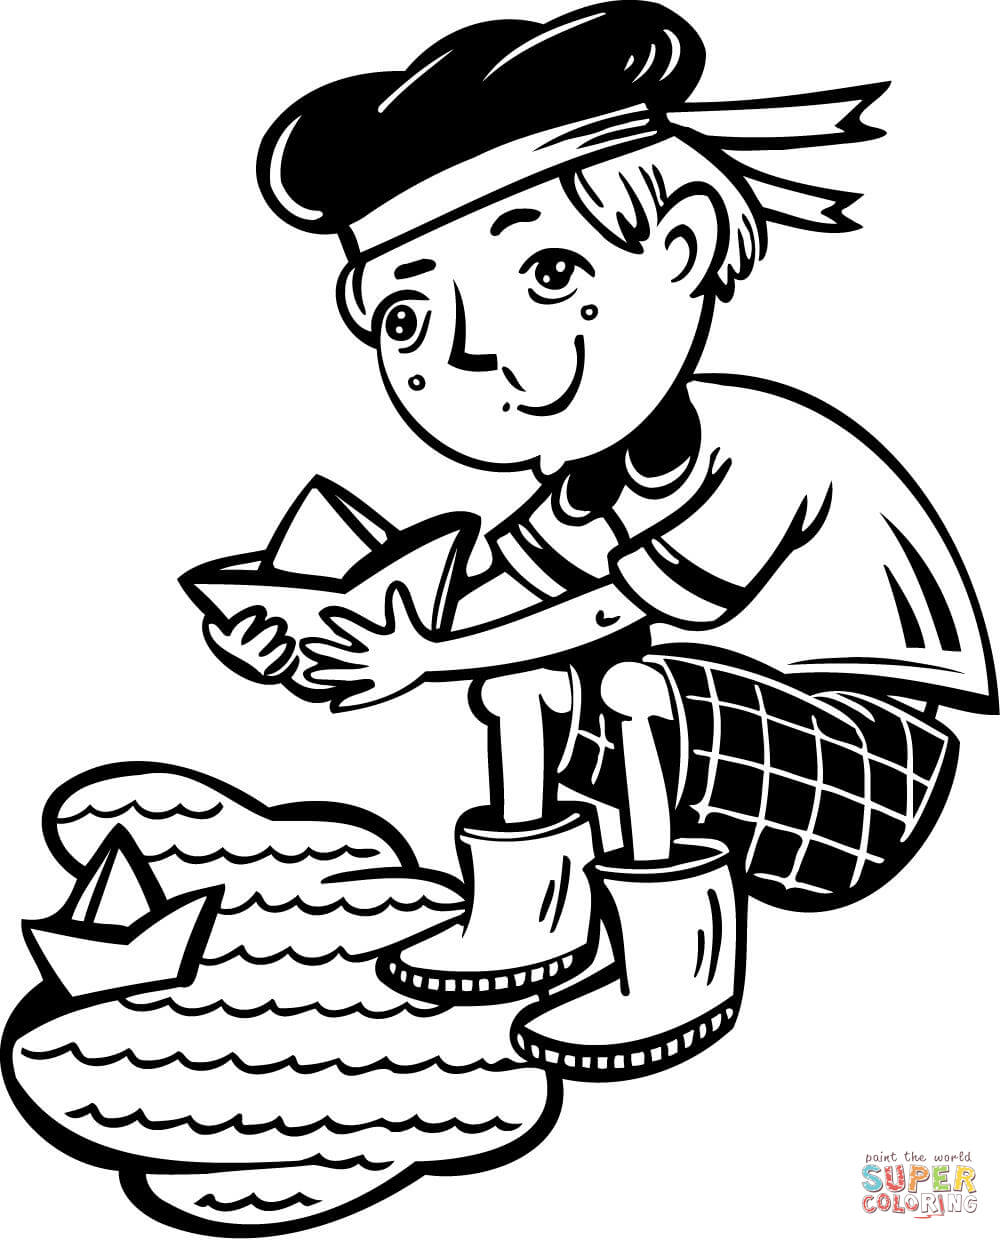 1000x1240 Boy Playing With Boats In A Puddle Coloring Page Free Printable